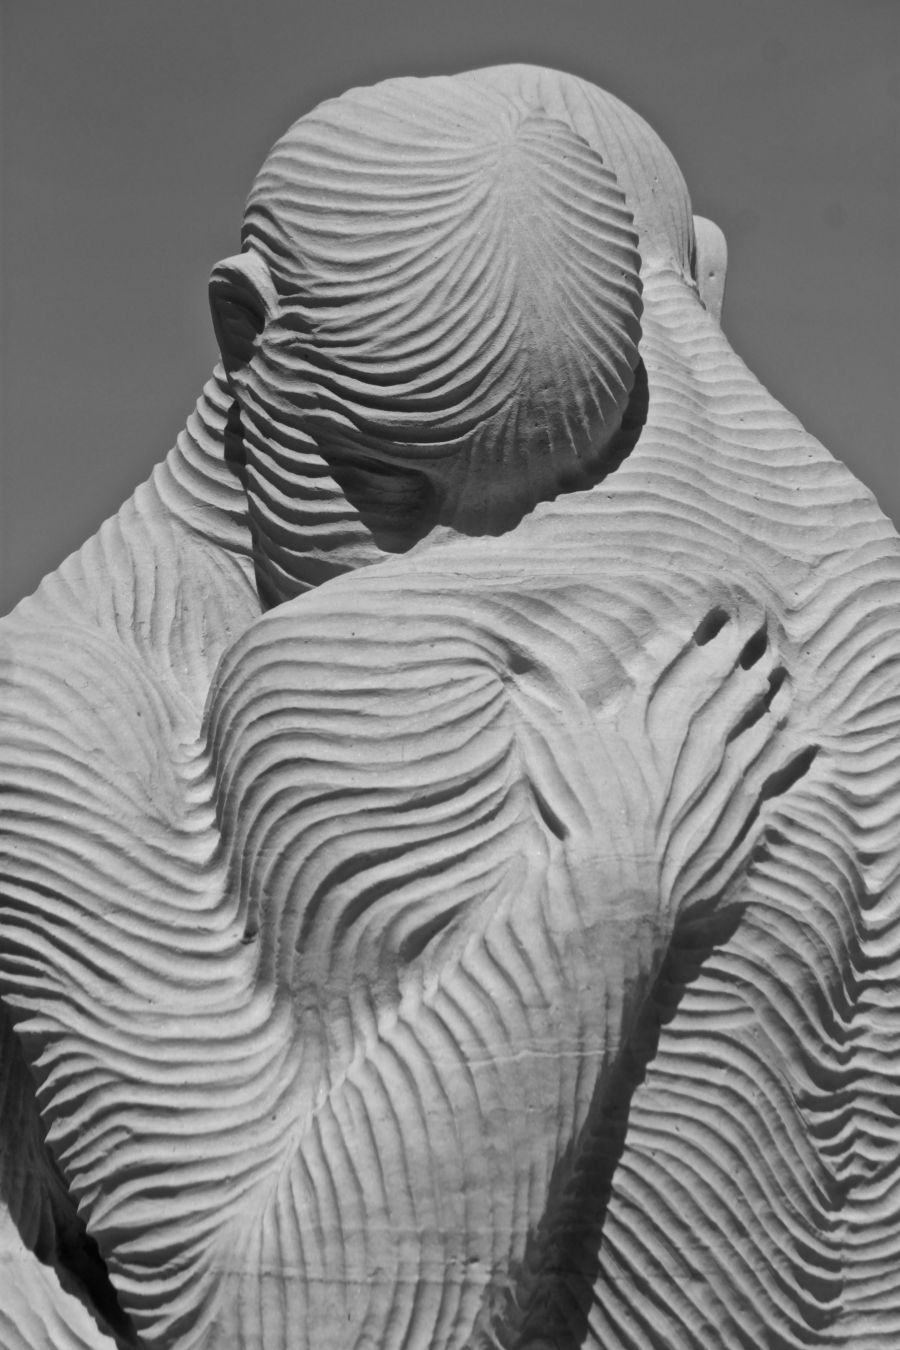 boston revere beach National Sand Sculpting Festival sand sculpture people embracing